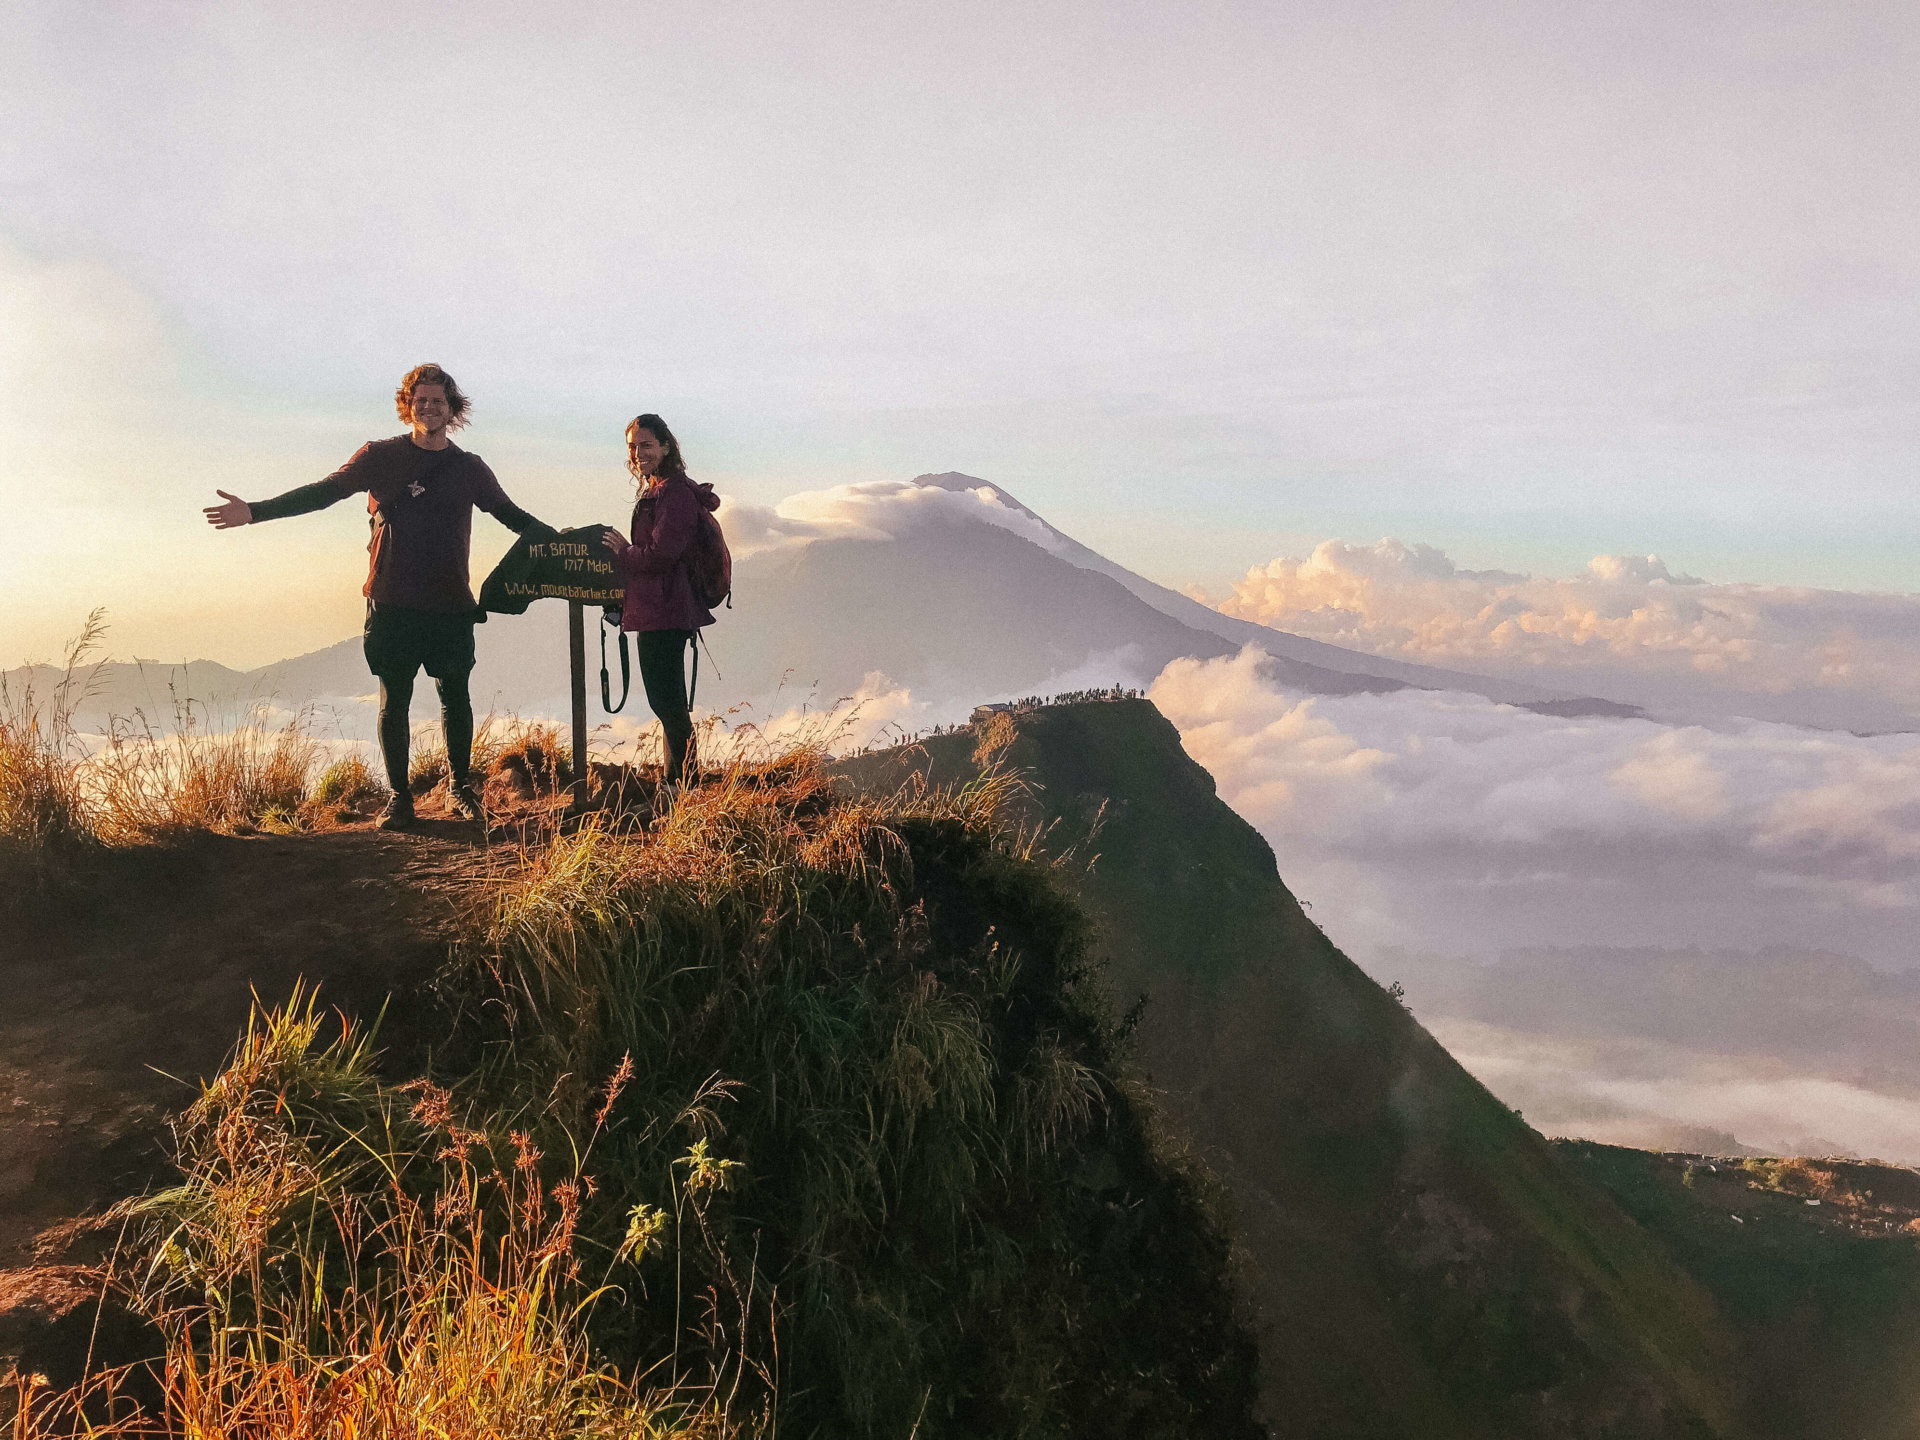 Double Occupancy standing on Mount Batur during sunrise